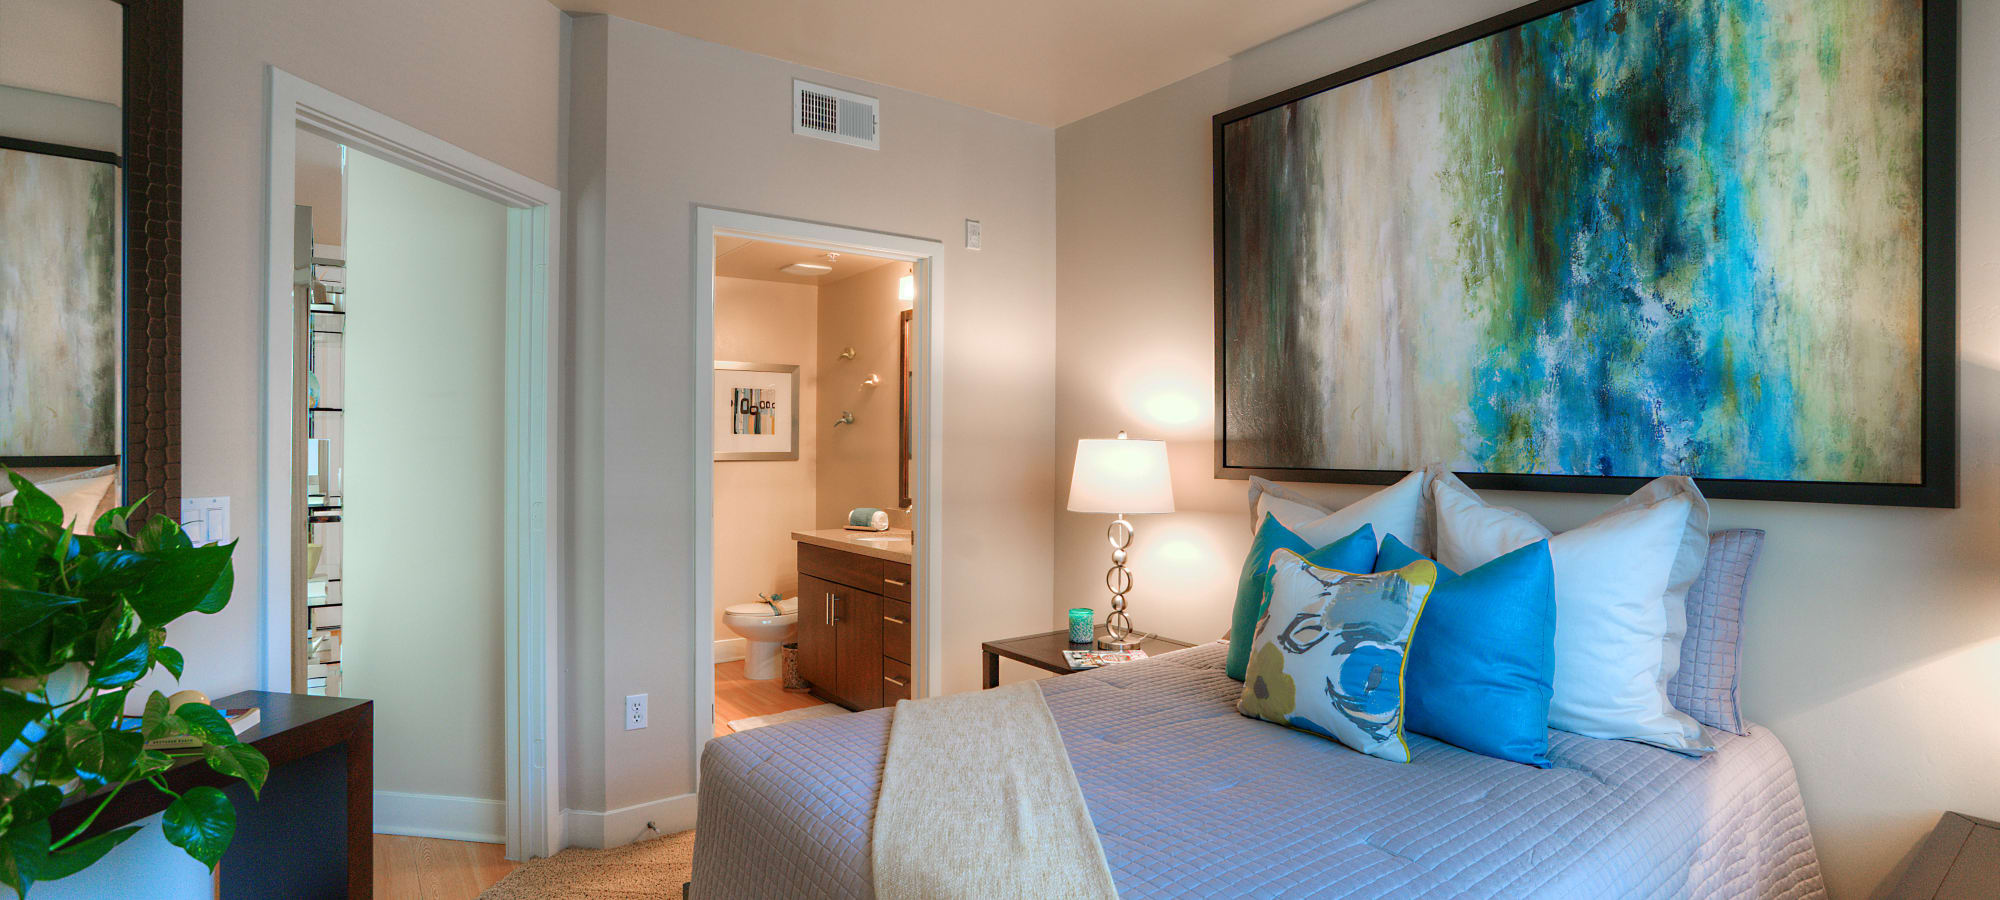 Guest bedroom with en suite bathroom in model home at Level at Sixteenth in Phoenix, Arizona